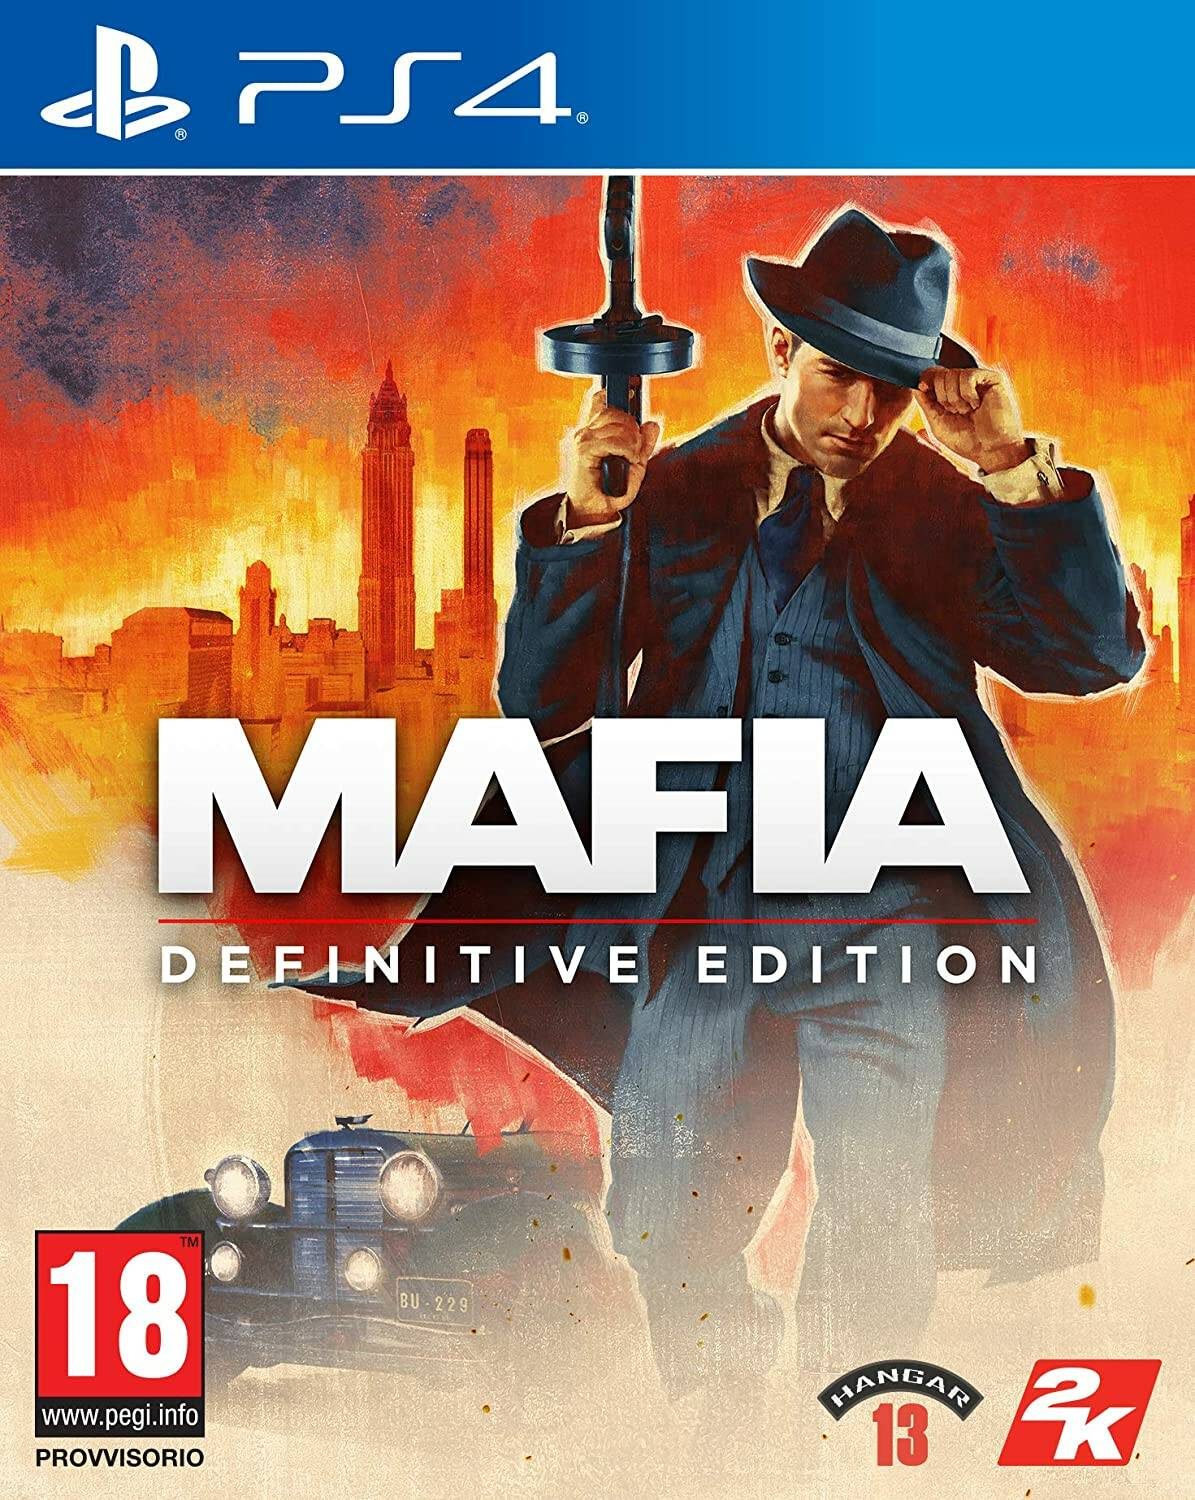 Mafia Limited Edition Box Art